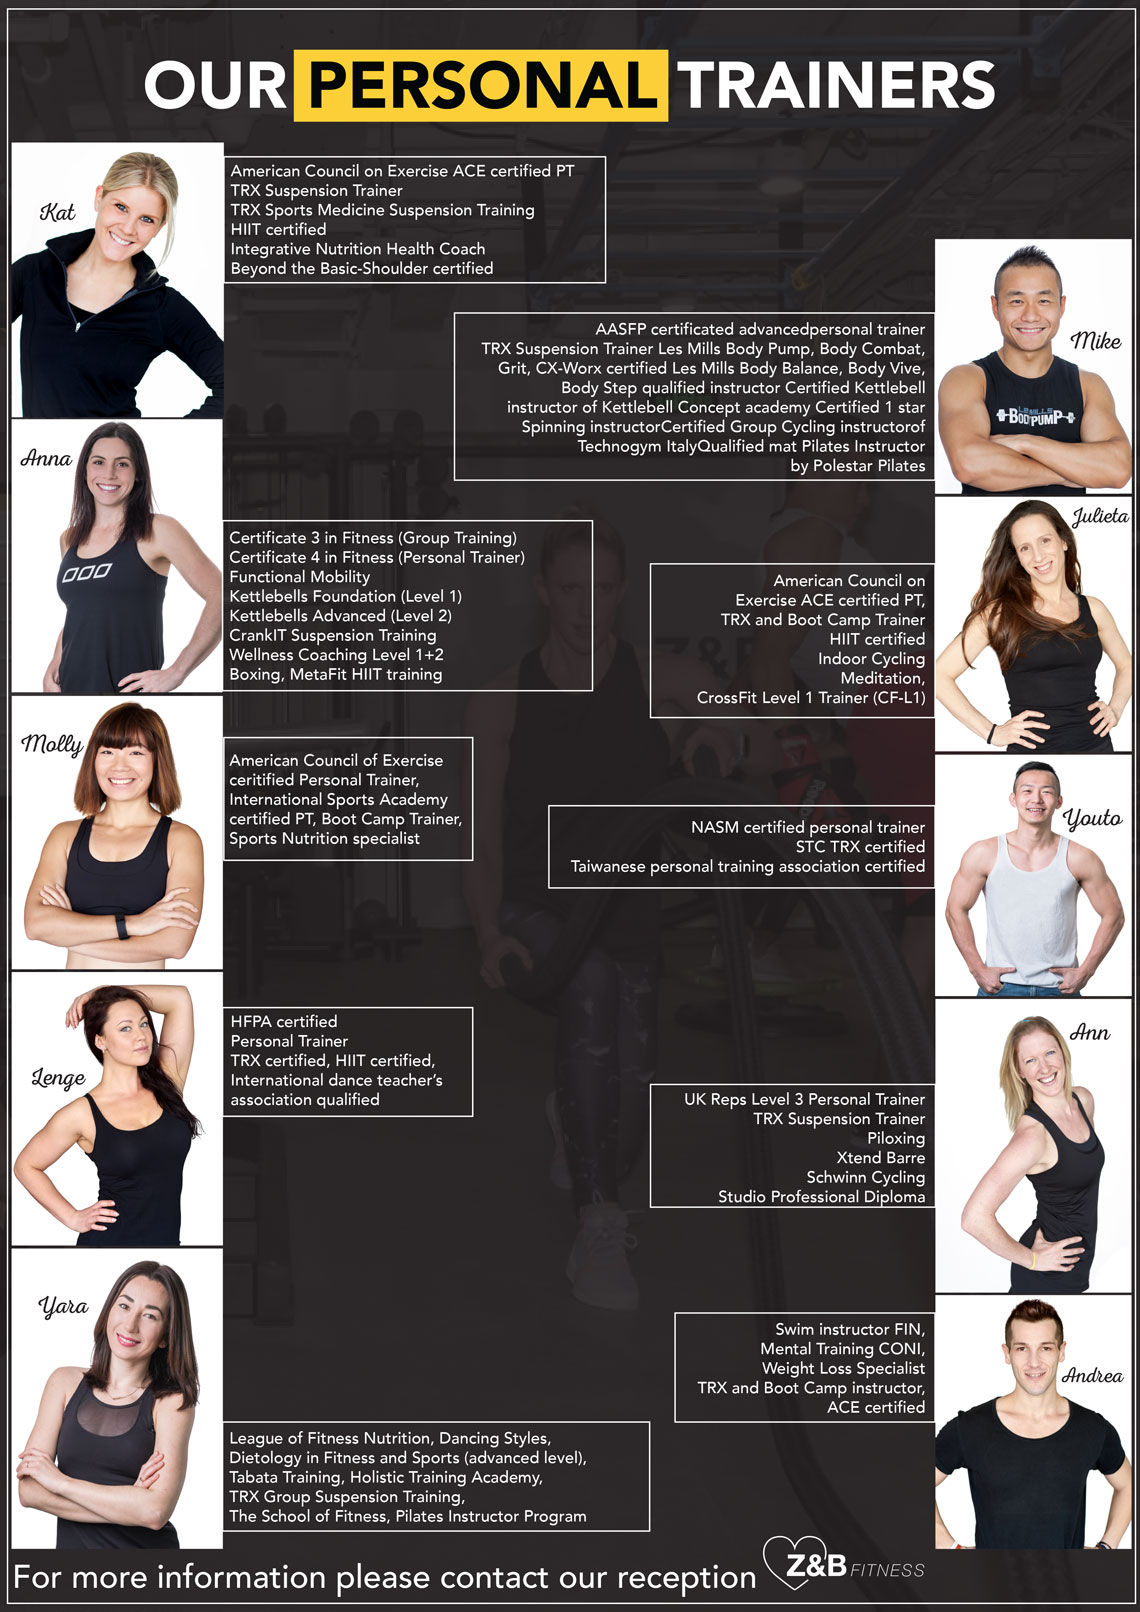 Z&B Personal Trainers